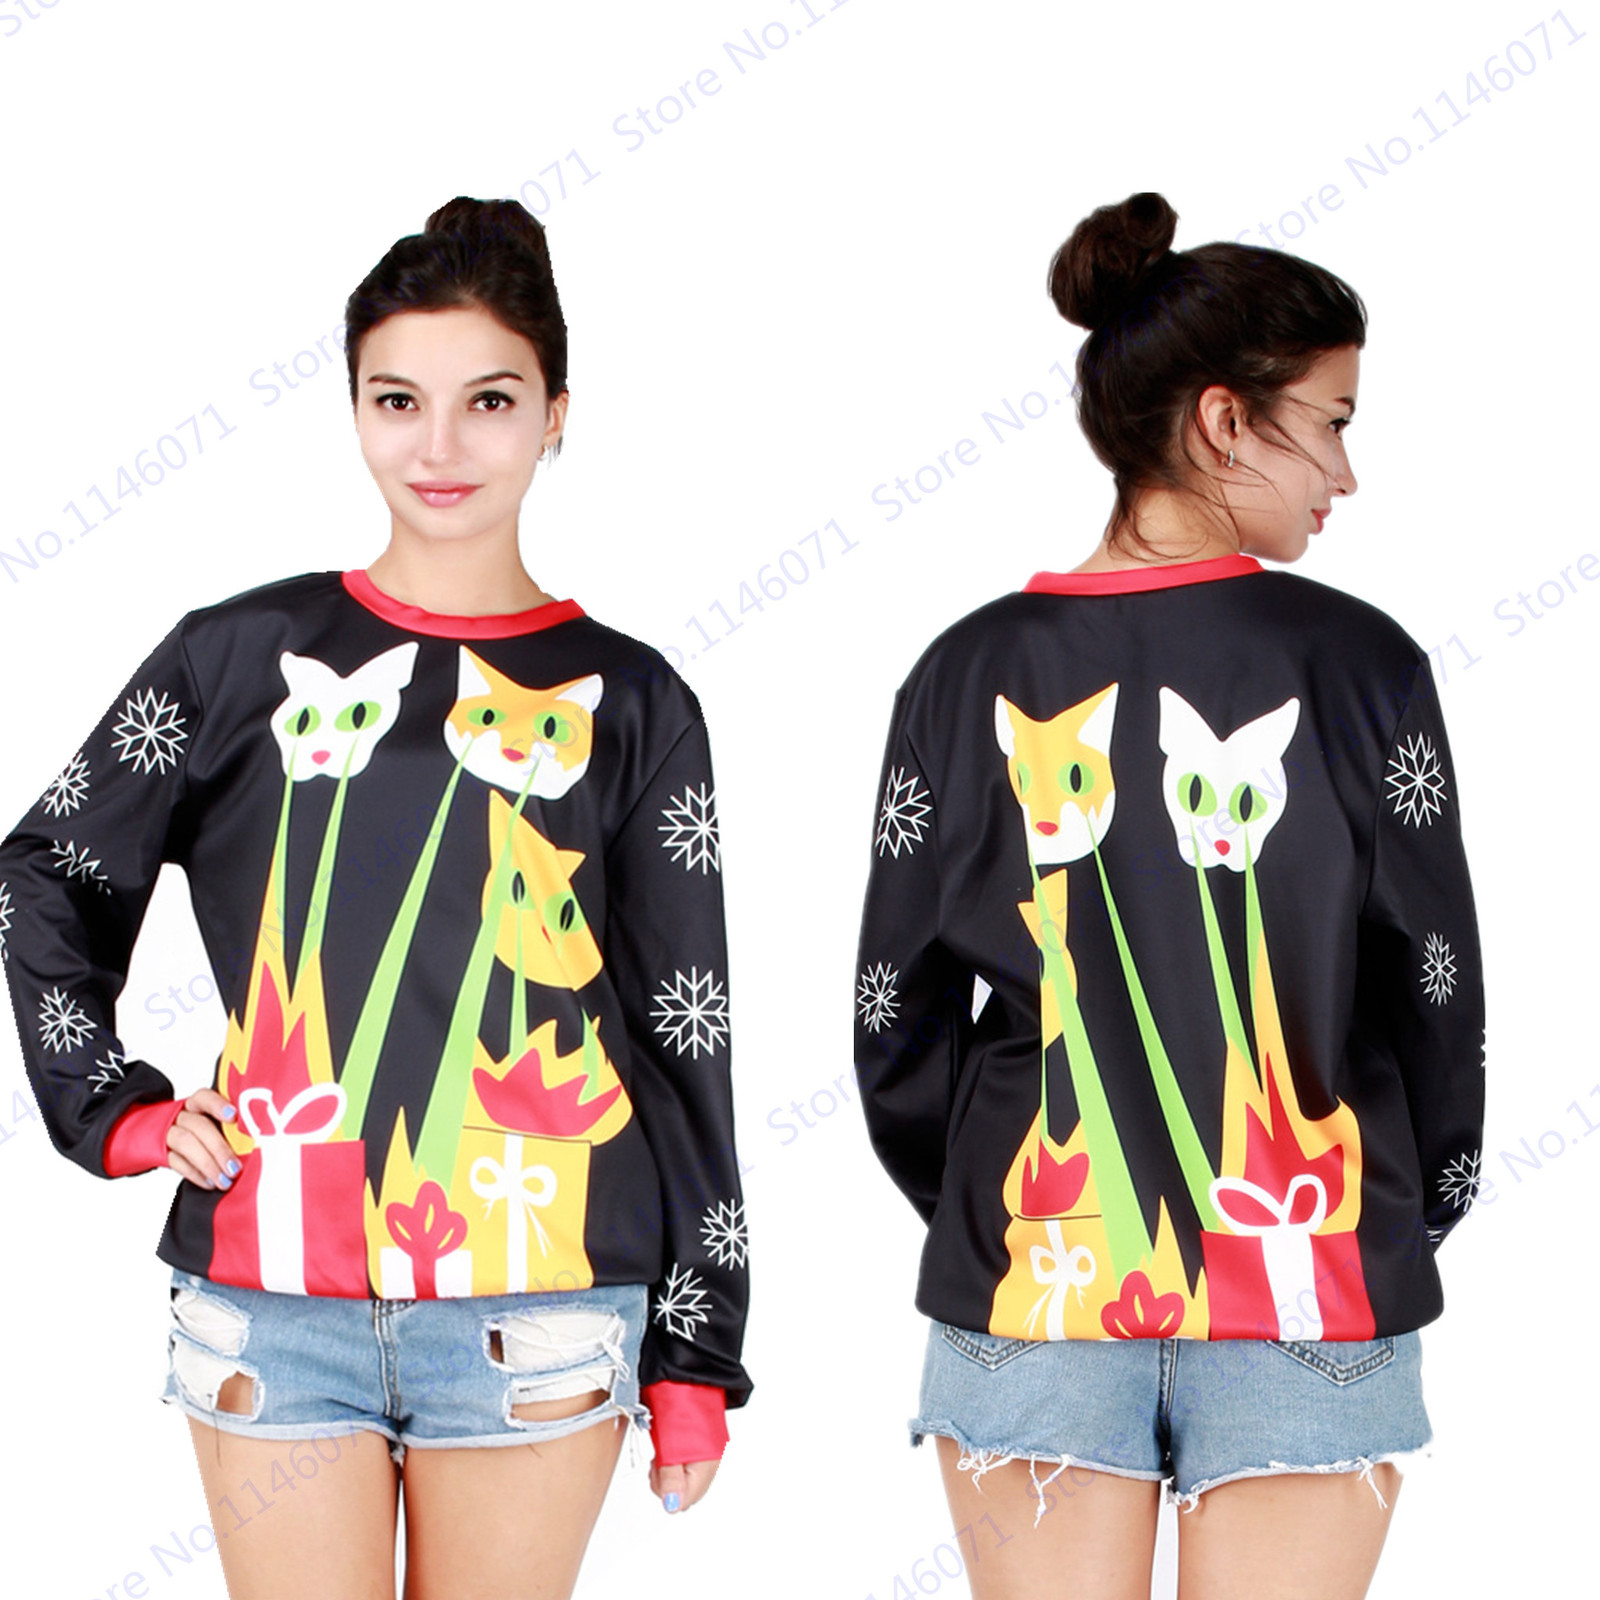 Primary image for Joey's laser beam cats Christmas Training Sweaters Black Ugly Christmas Women Ho